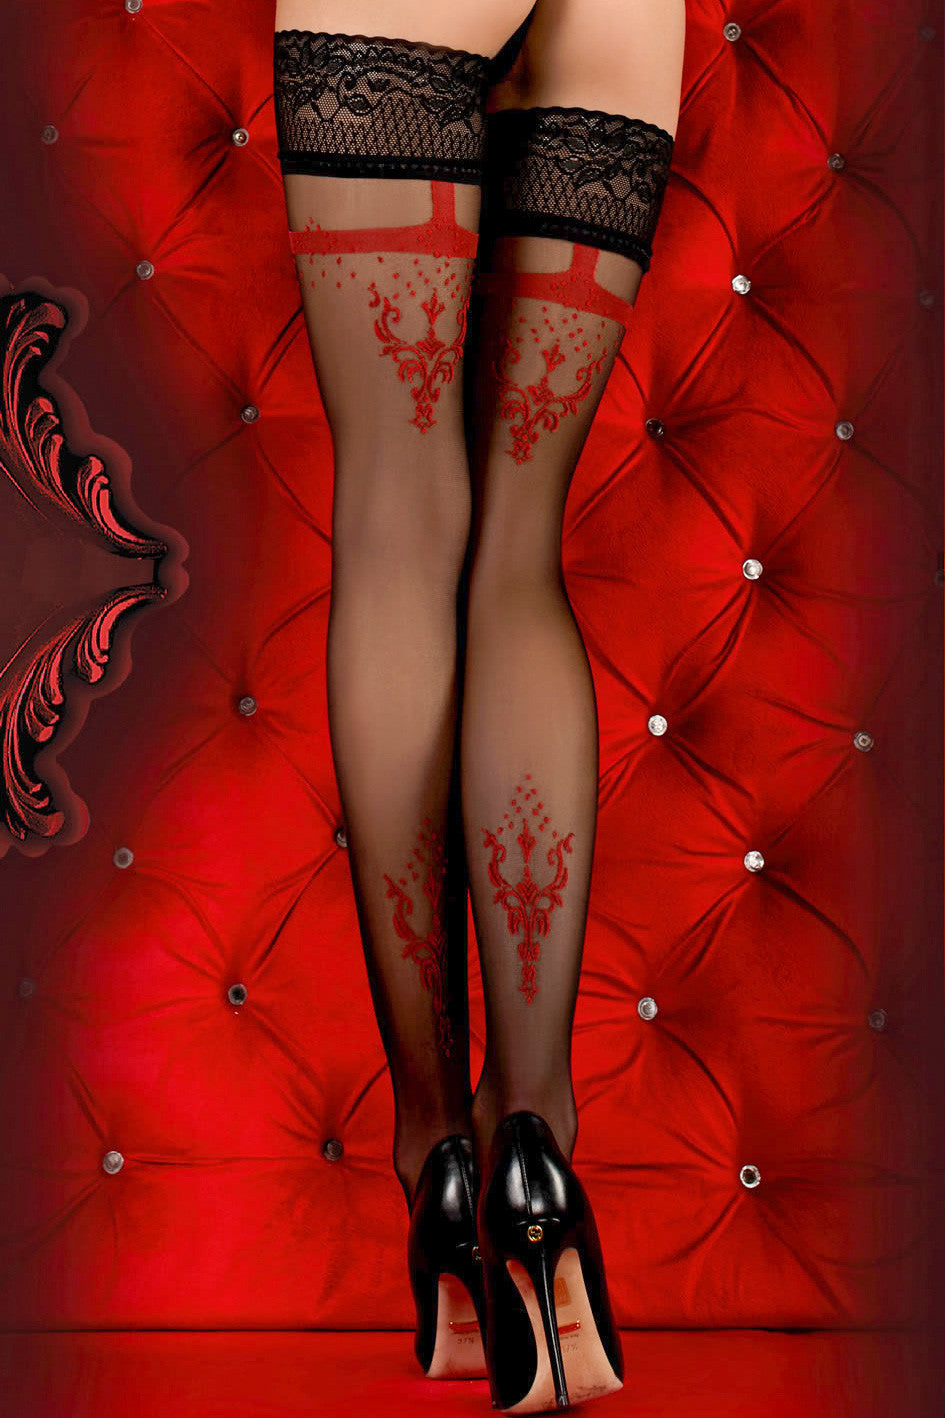 Ballerina Faux Suspender Floral Black/Red Hold Ups - Mayfair Stockings - Ballerina - Hold Ups - 1